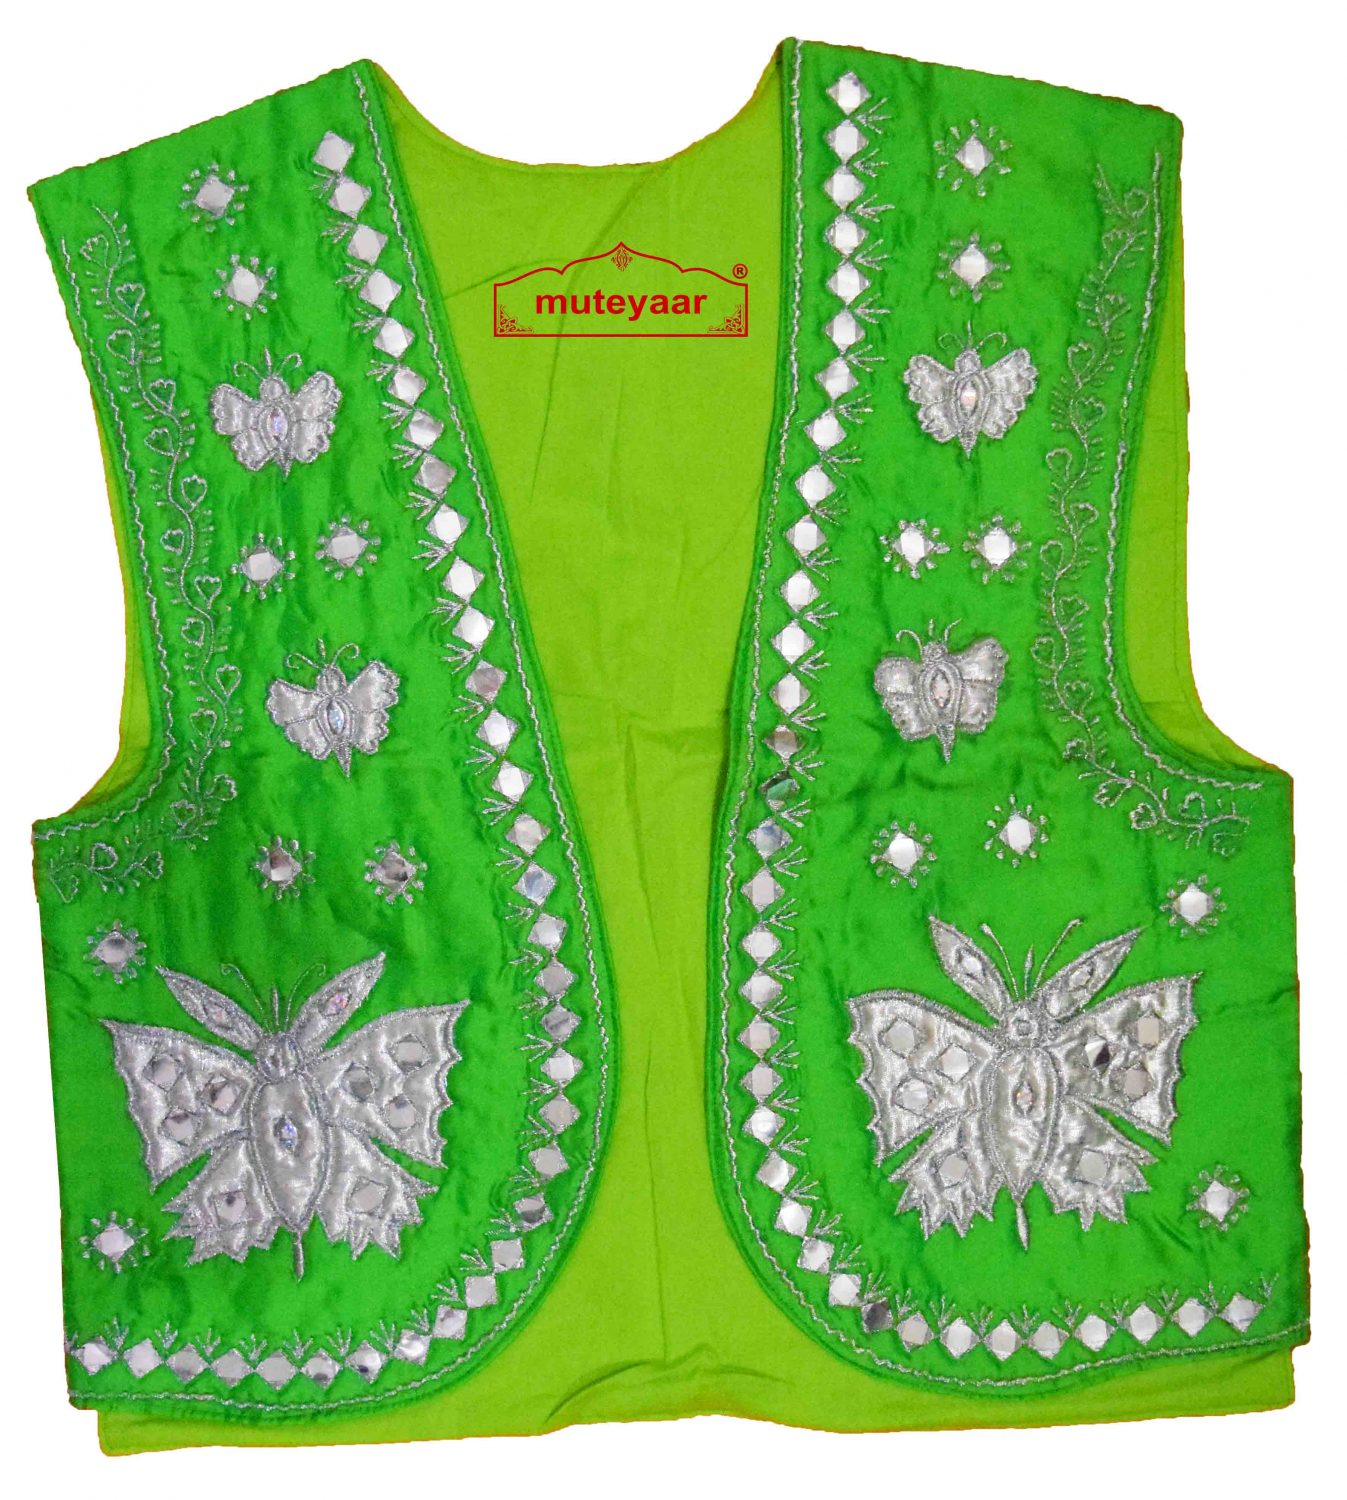 Butterfly Design Embroidered Bhangra Costume Outfit Dance Dress 2